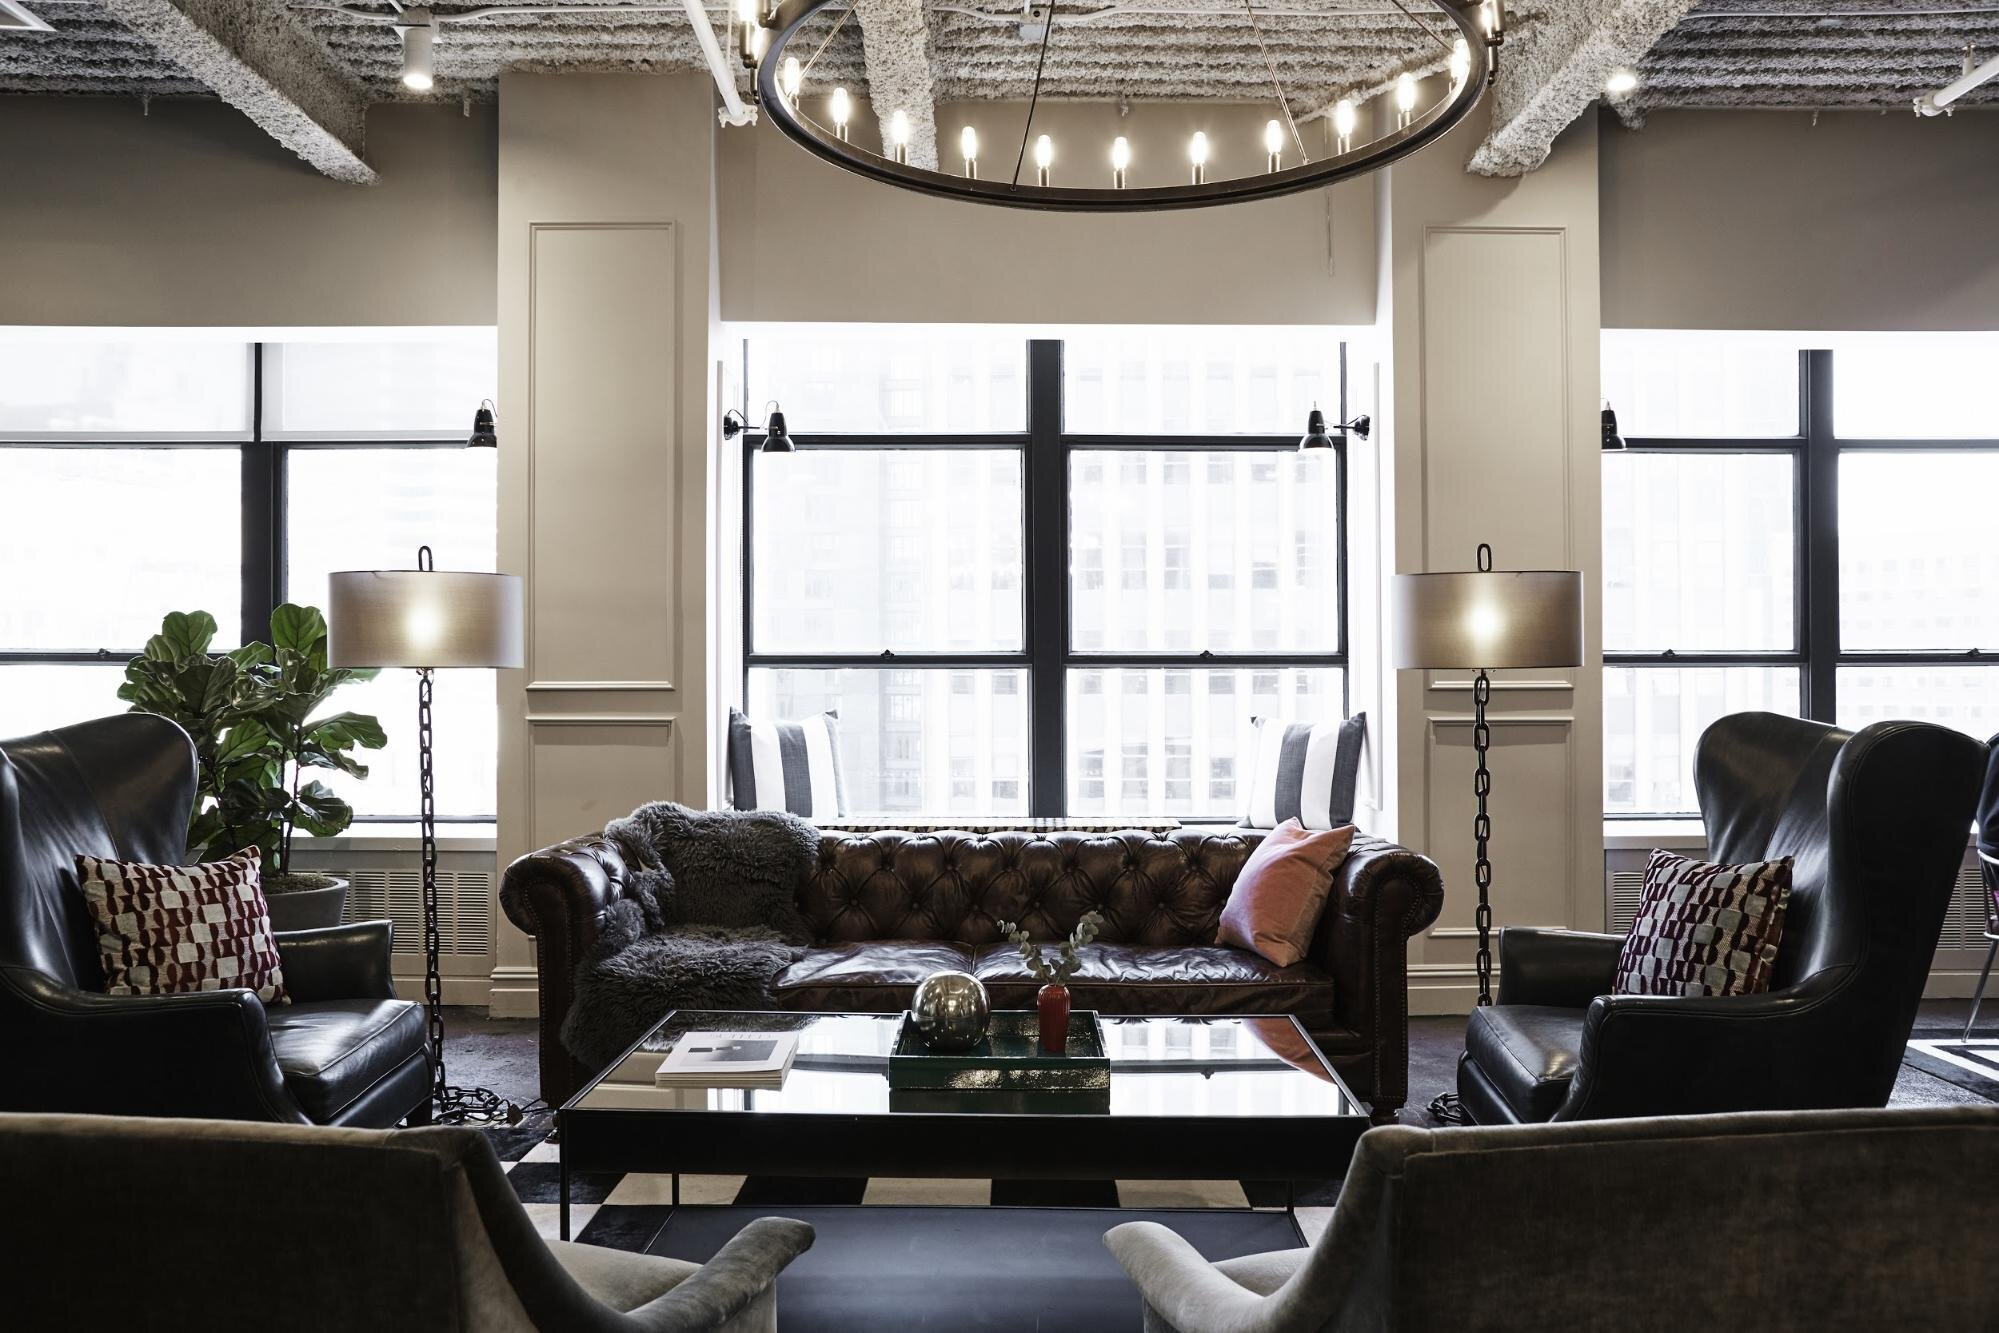 Office space with leather couches